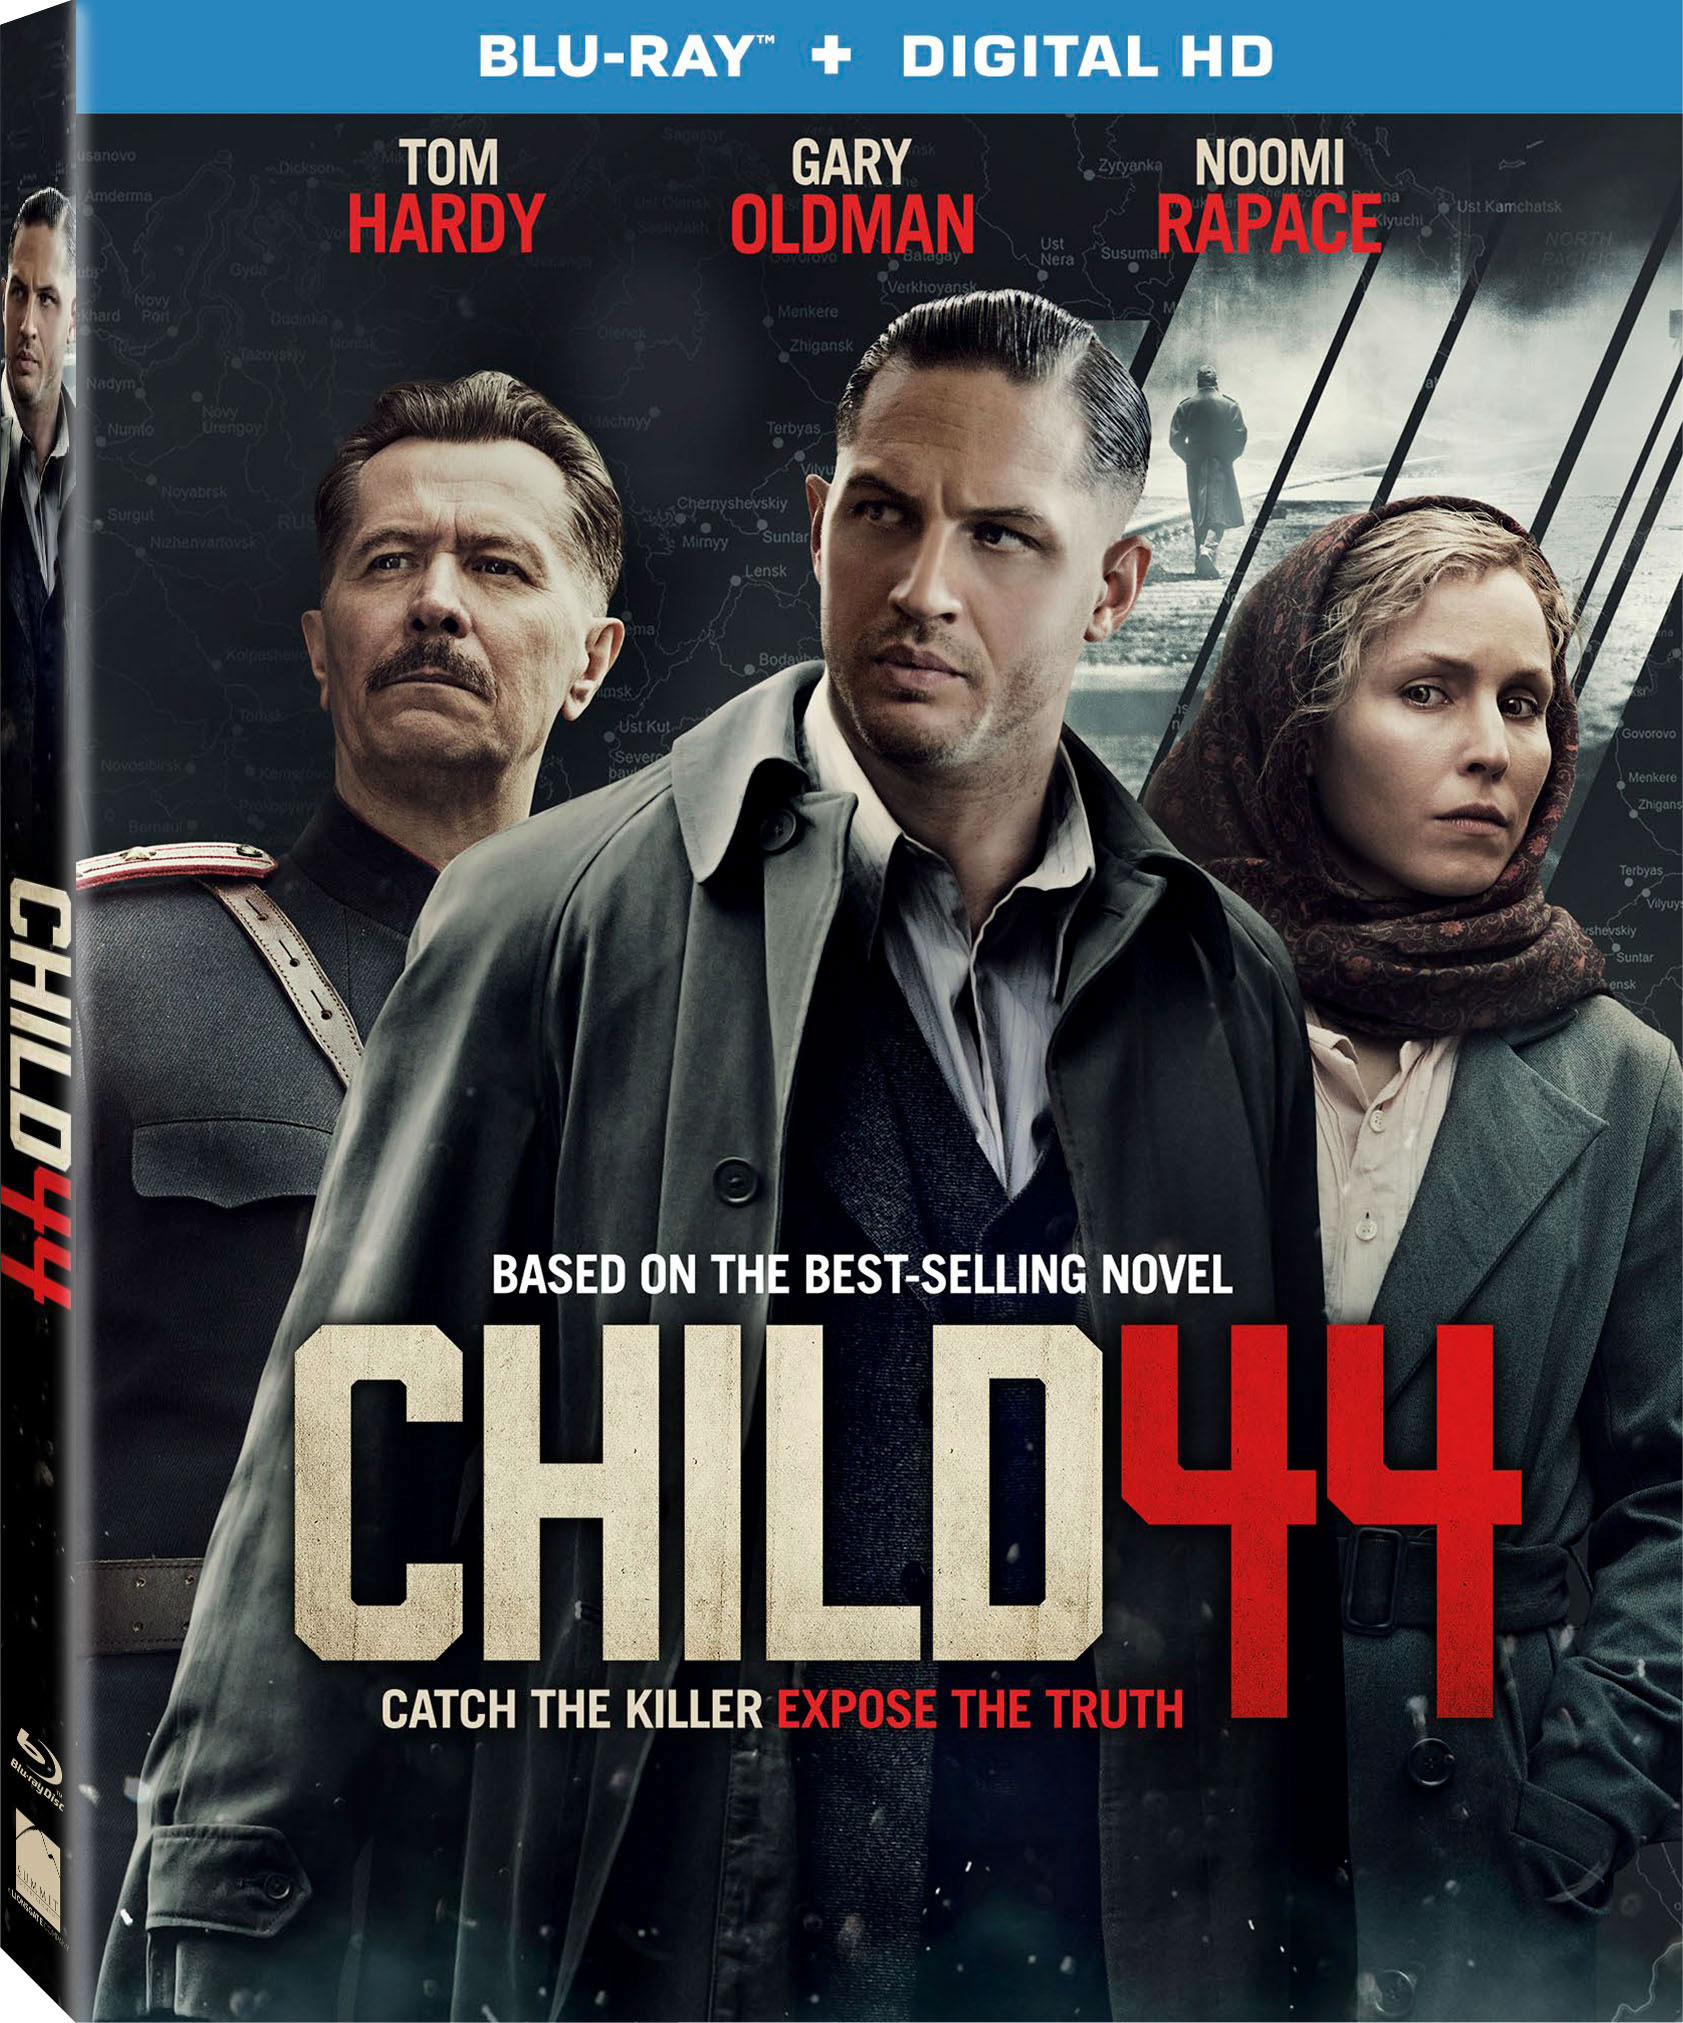 Child 44 Blu-Ray Competition